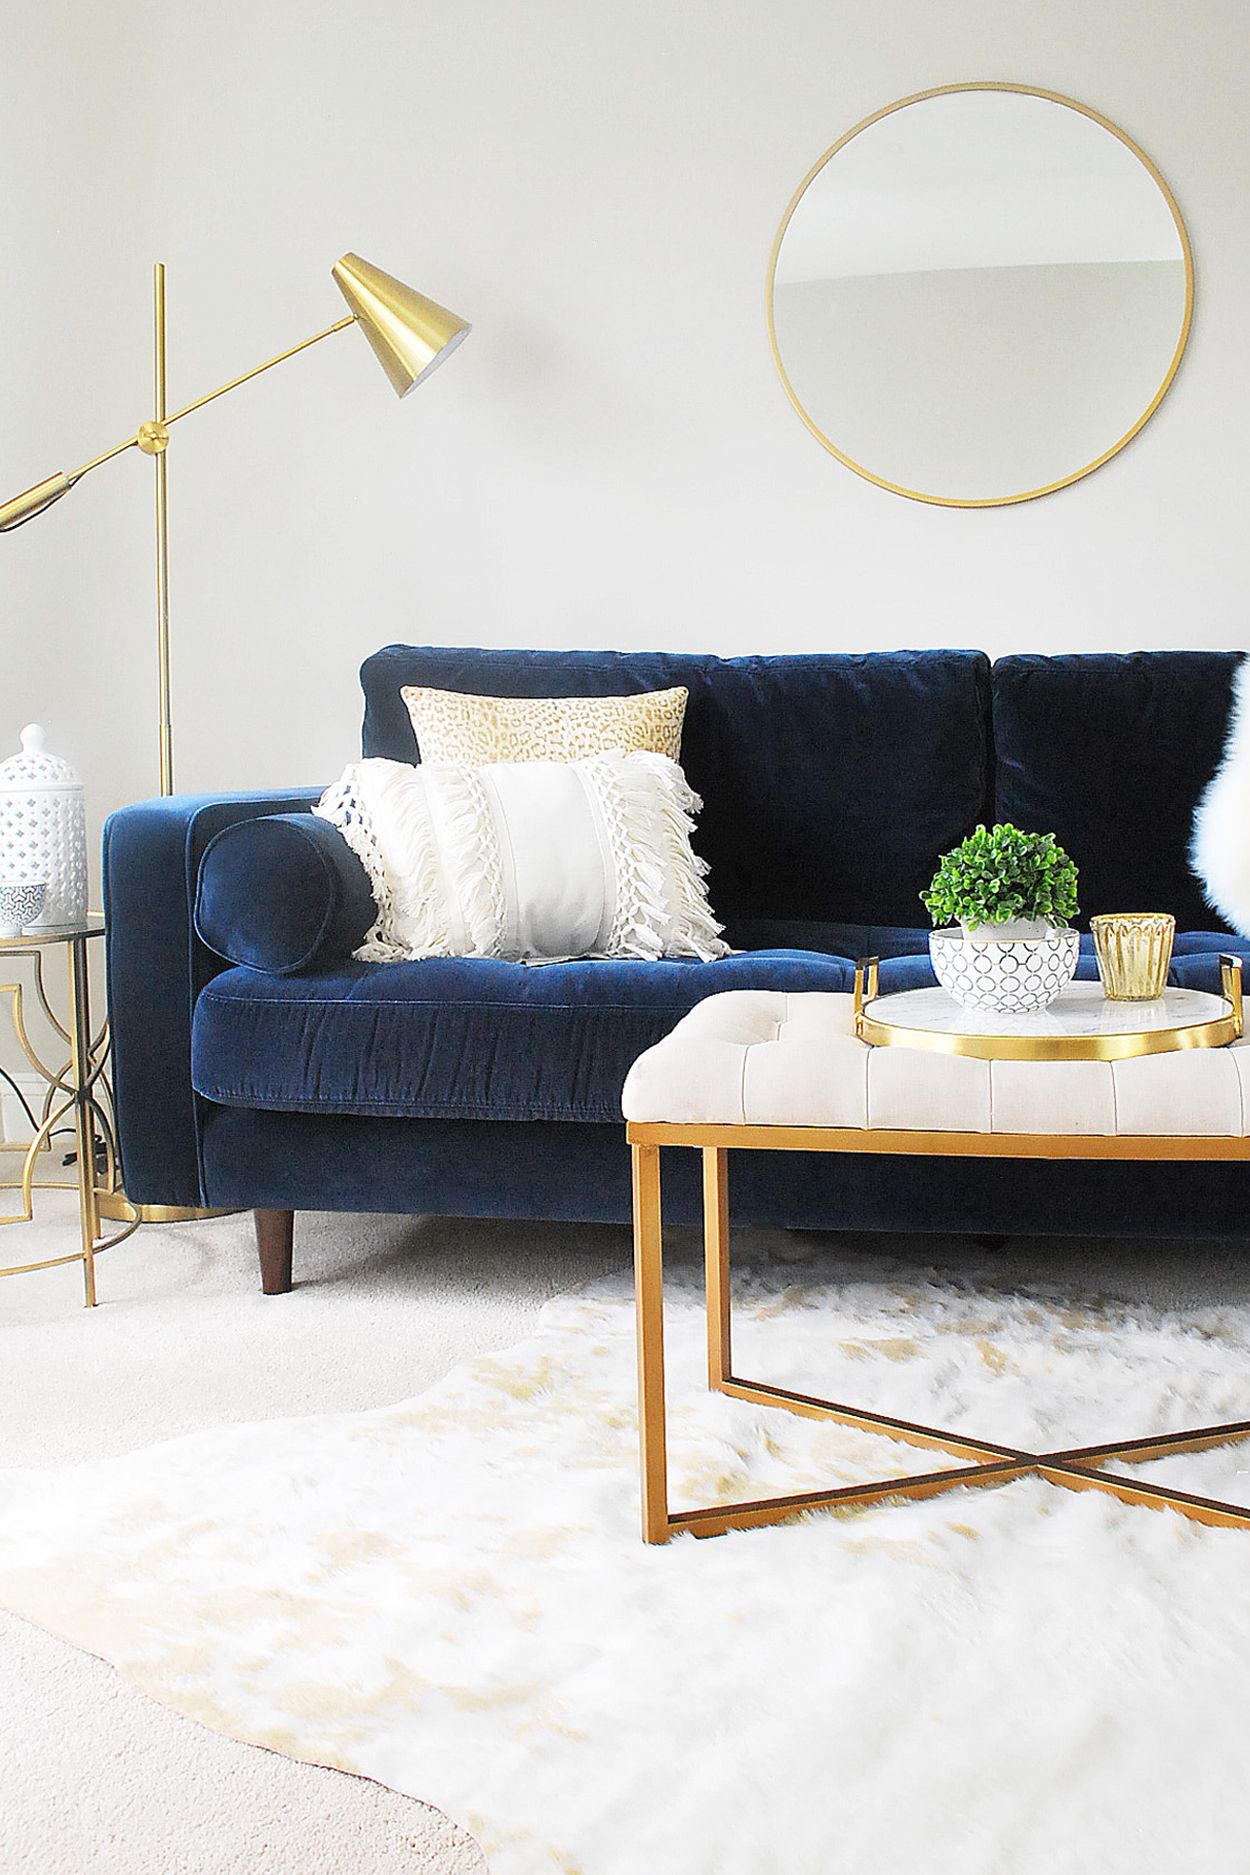 Sven Cascadia Blue Sofa In 2020 Blue Couch Living Room Living Room Designs Living Room Sofa